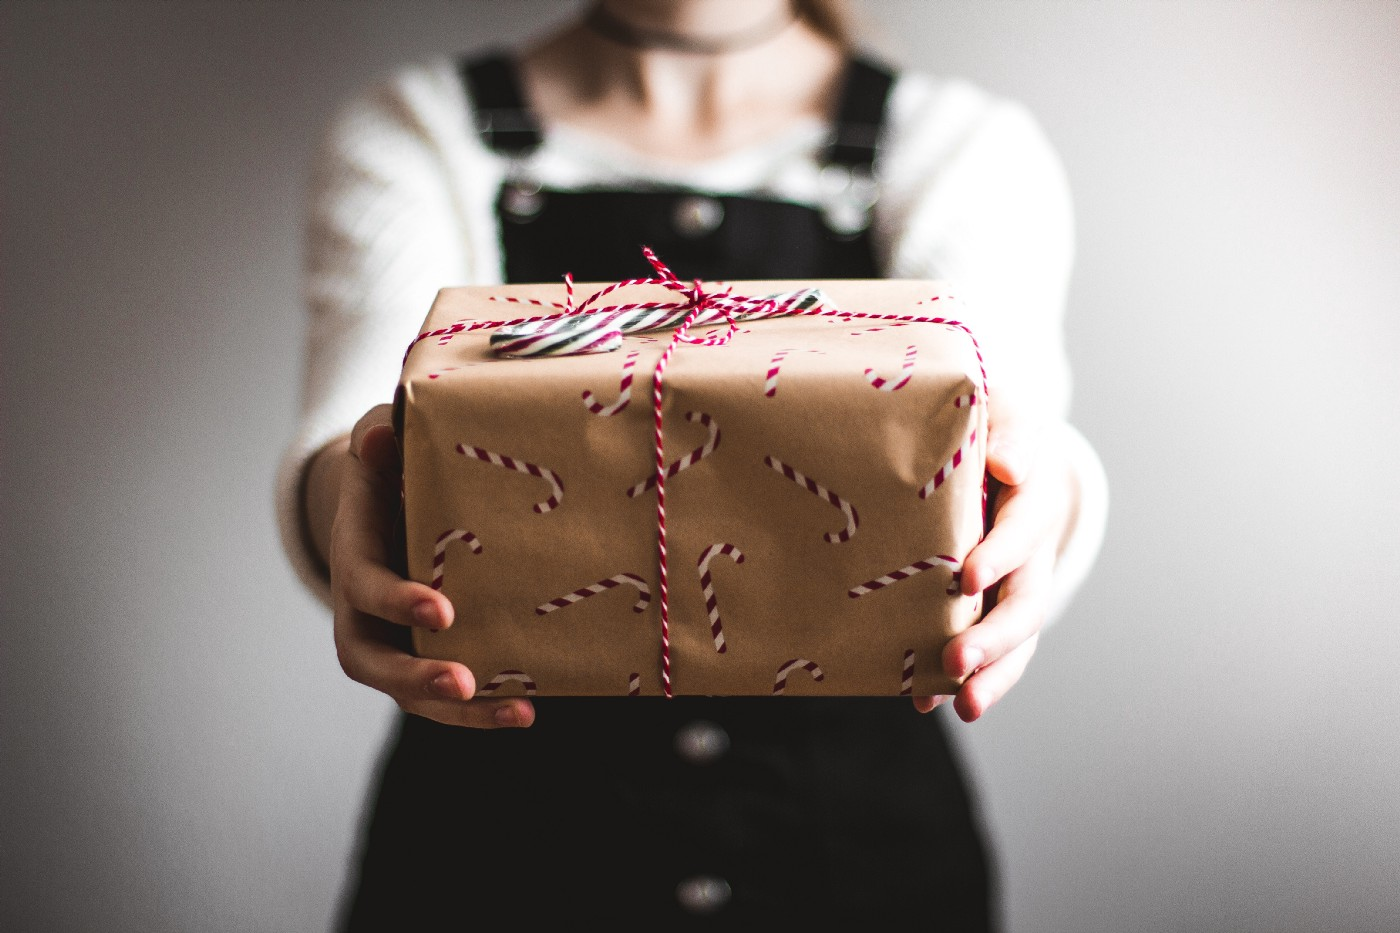 A gift wrapped package, handed out to you, by a delivery person.